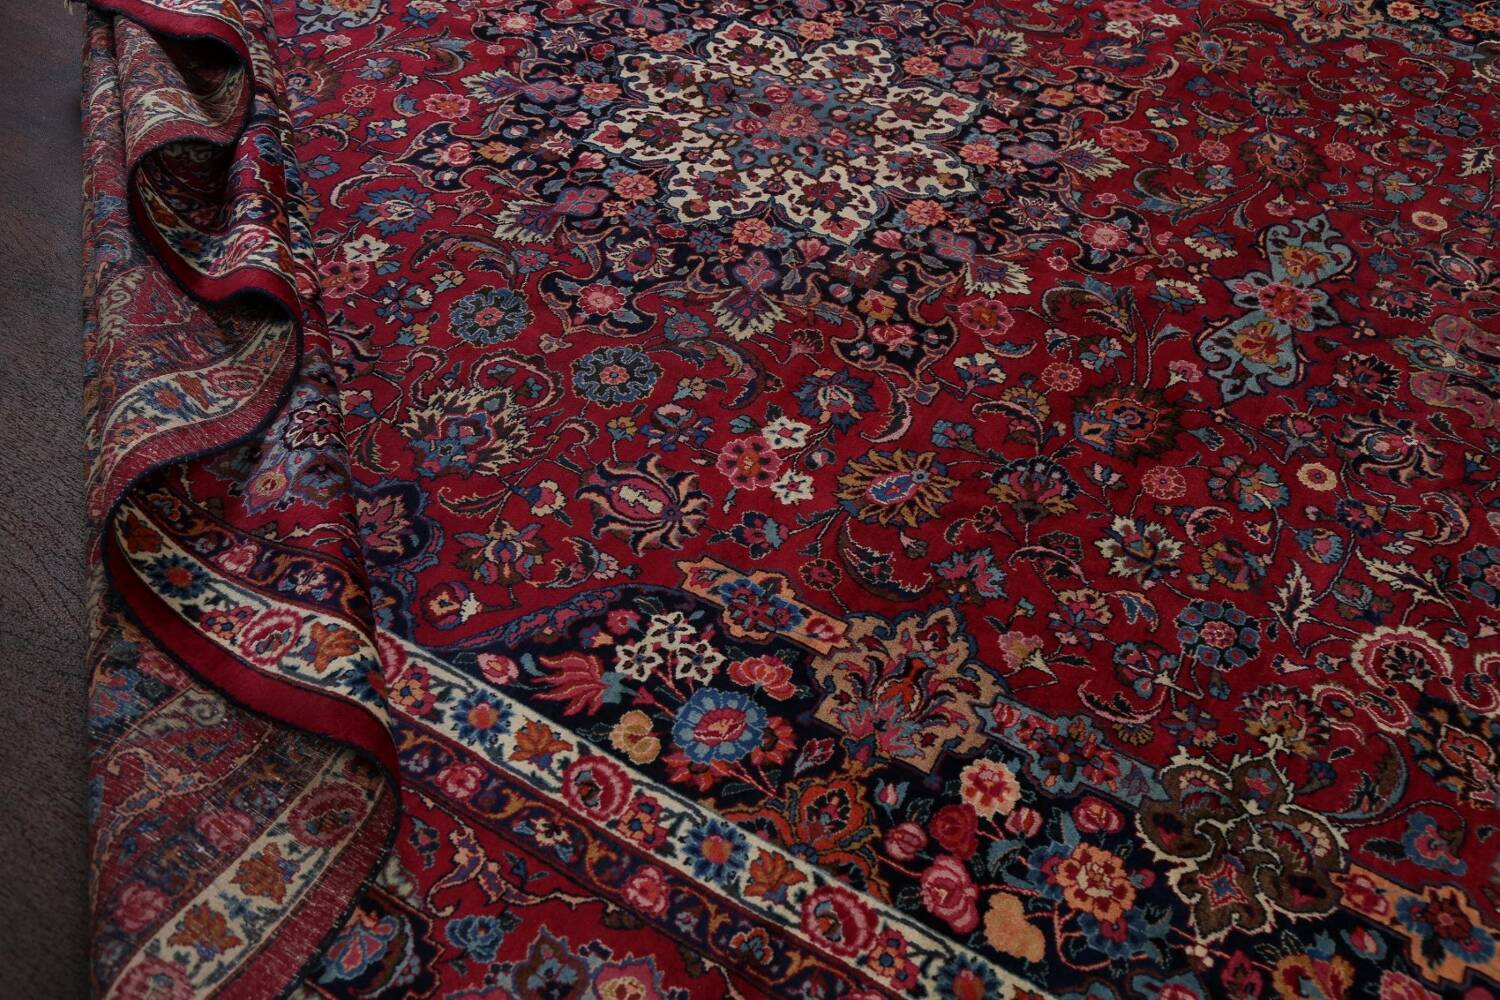 Antique Vegetable Dye Mood Persian Red Rug 11x15 image 18